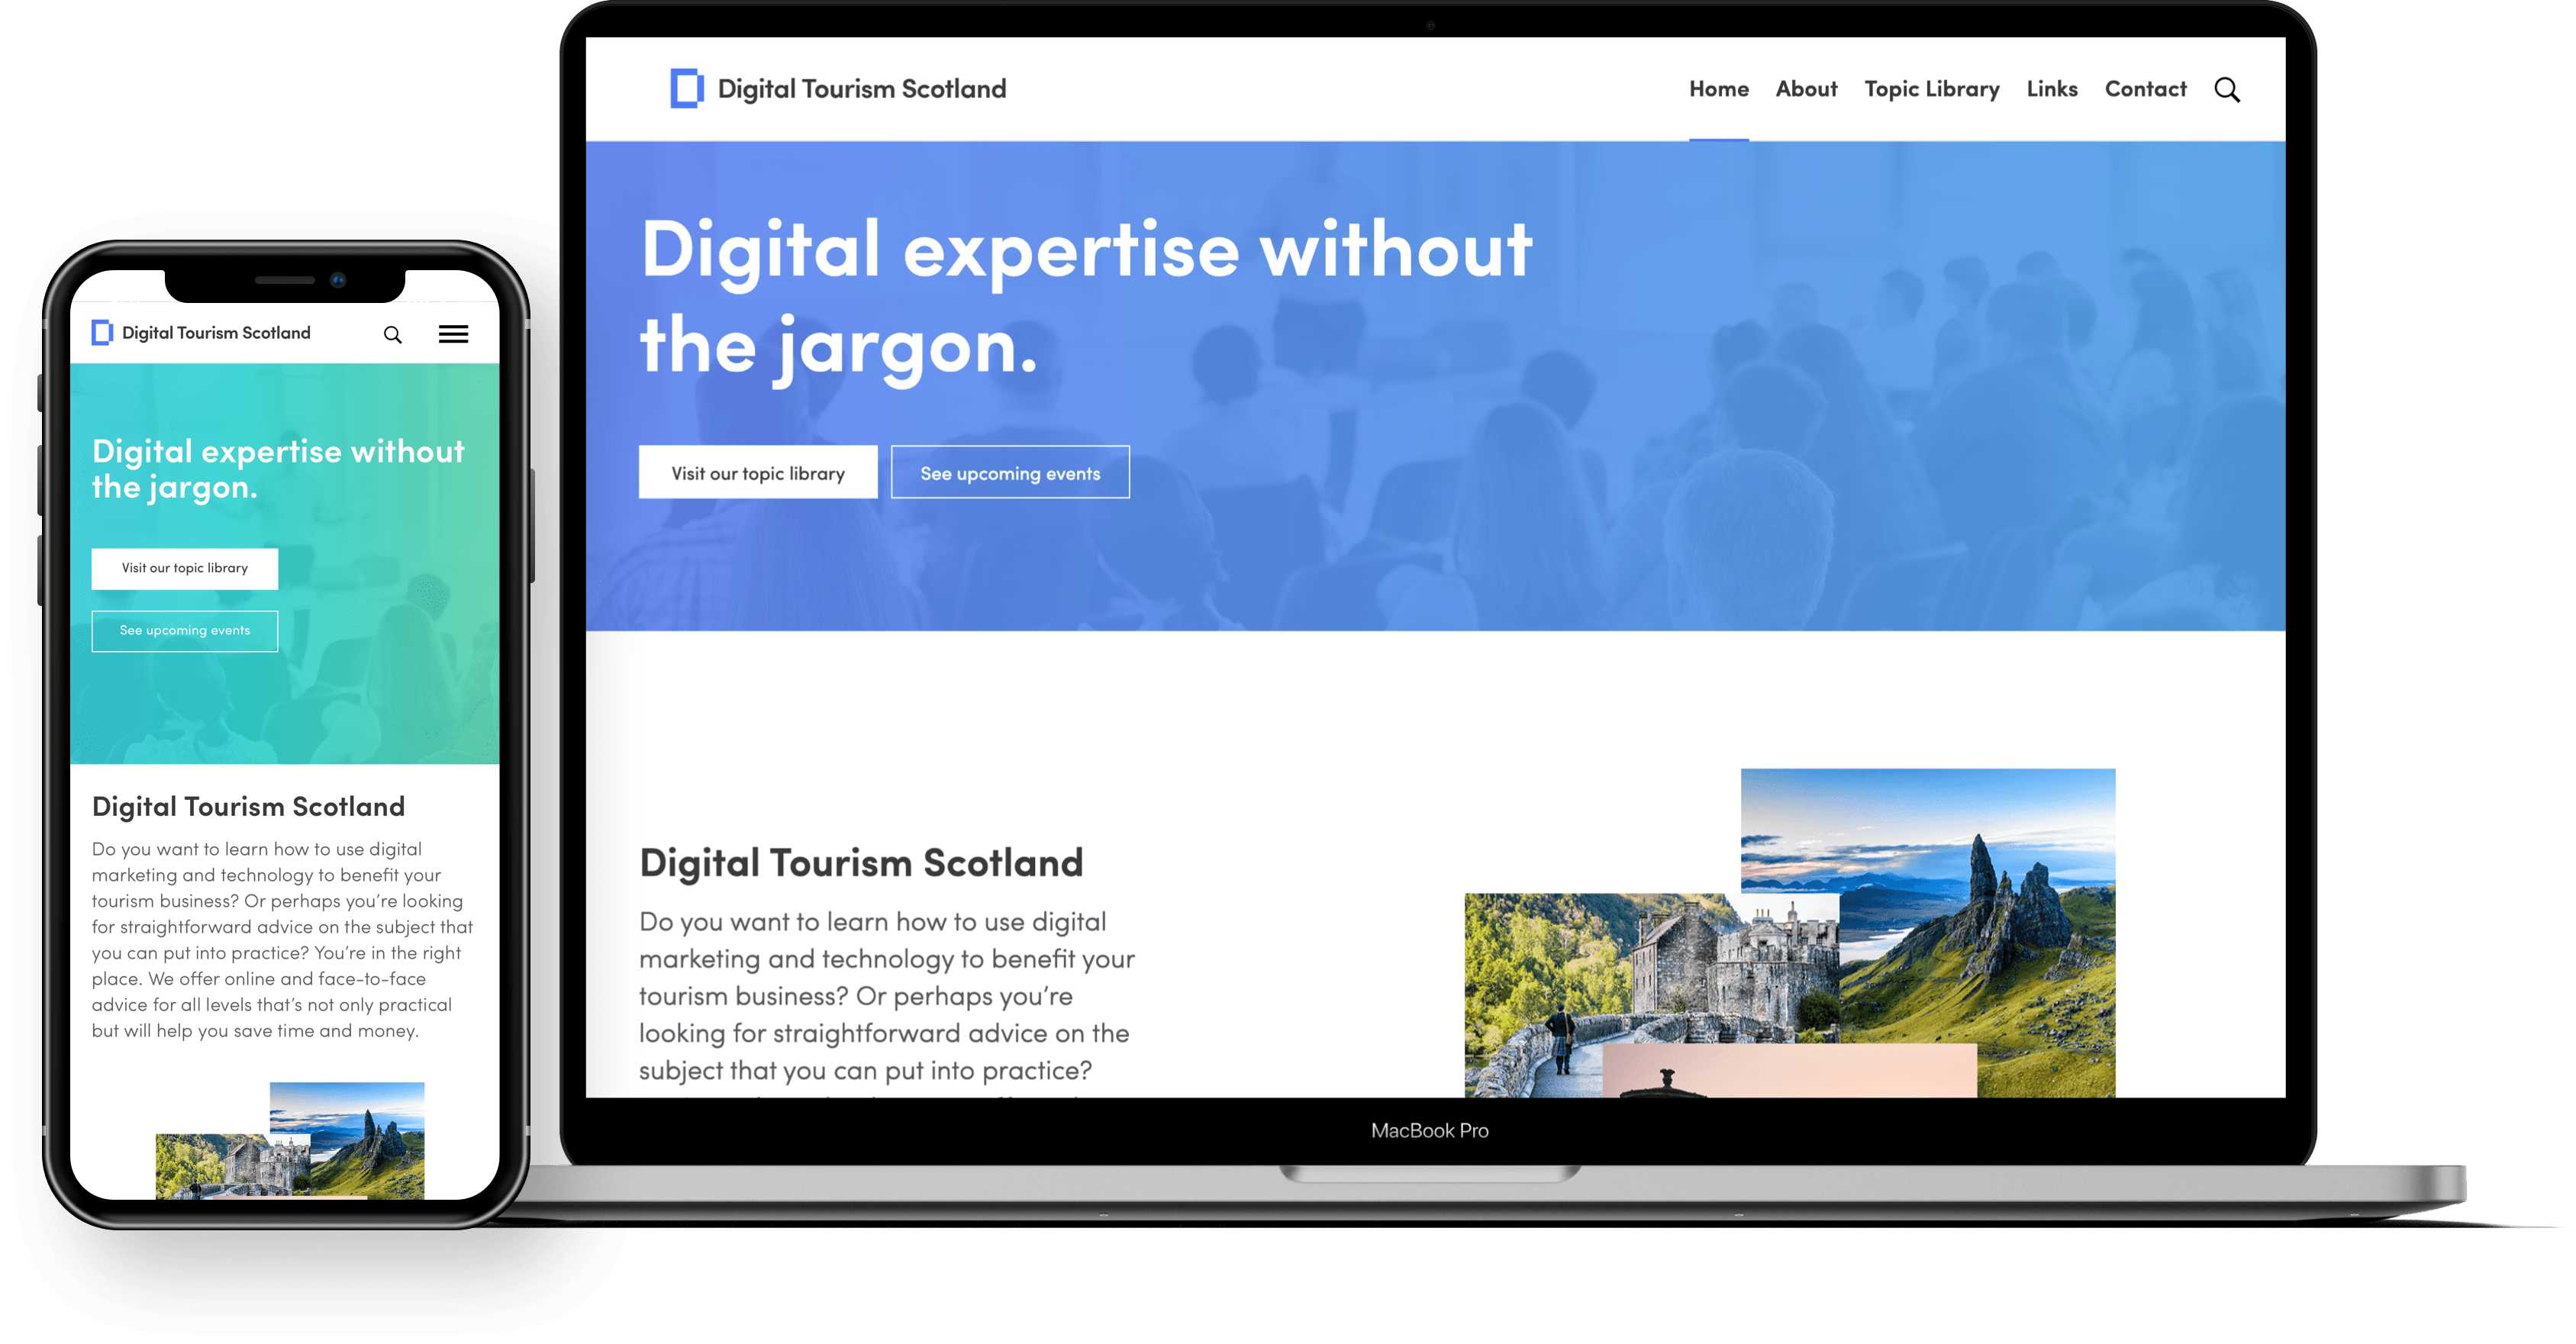 Image of a macbook and a iphone 11 with Digital Tourism Scotland website on them